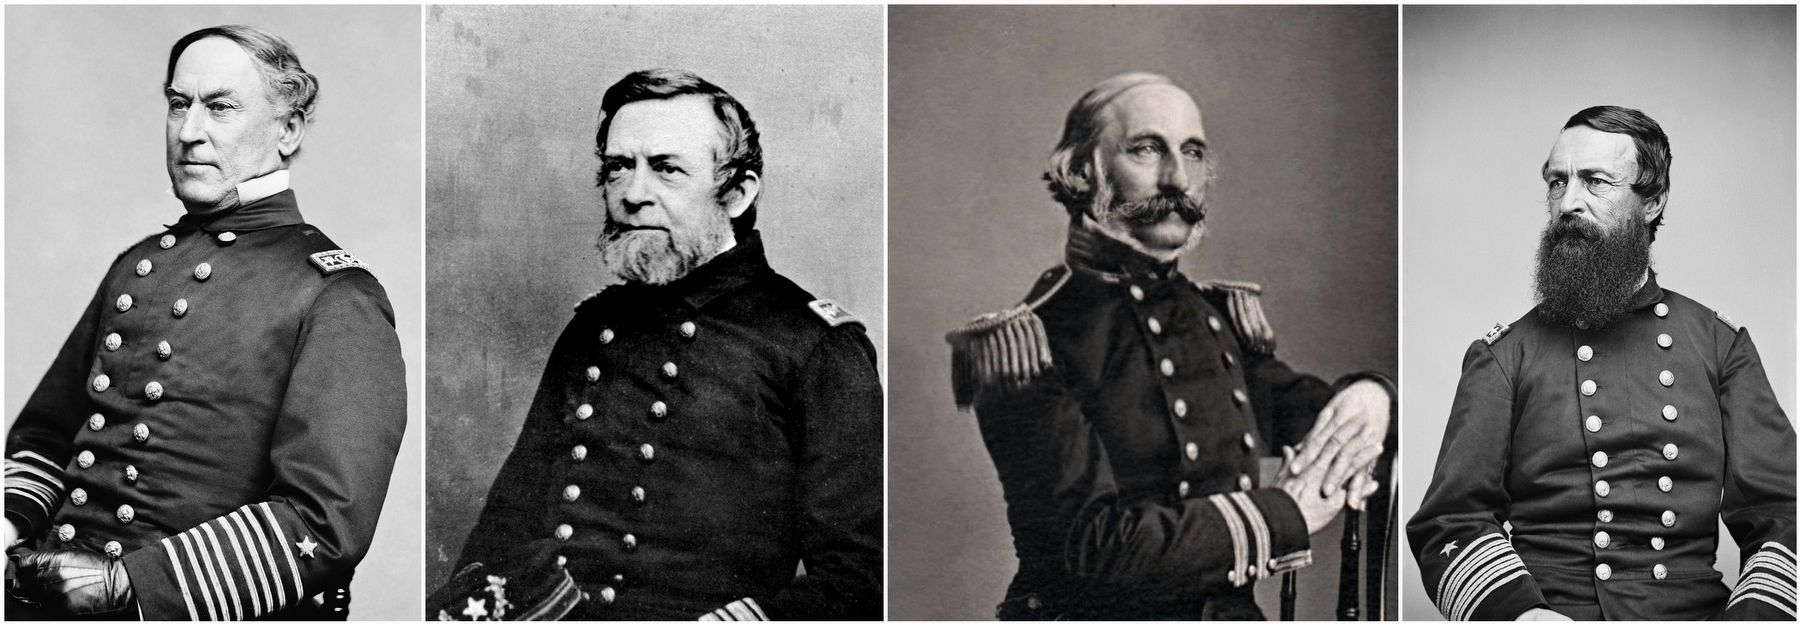 Admirals (left to right): David G. Farragut, Andrew H. Foote, Charles H. Davis & David D. Porter. image. Click for full size.